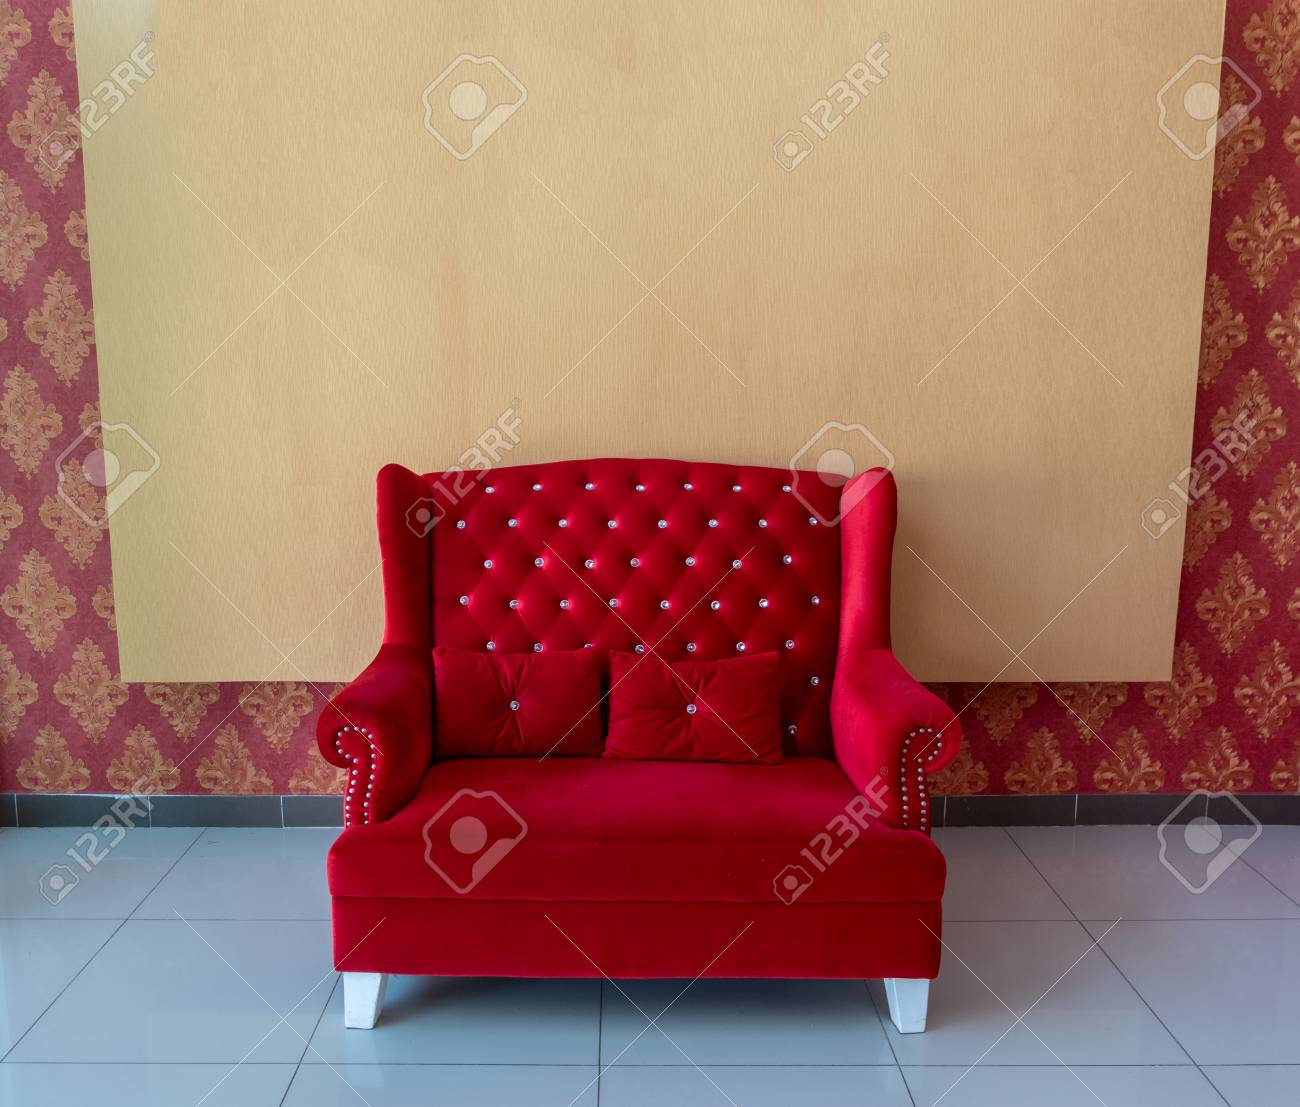 Elegant red sofa with blank backdrop texture background